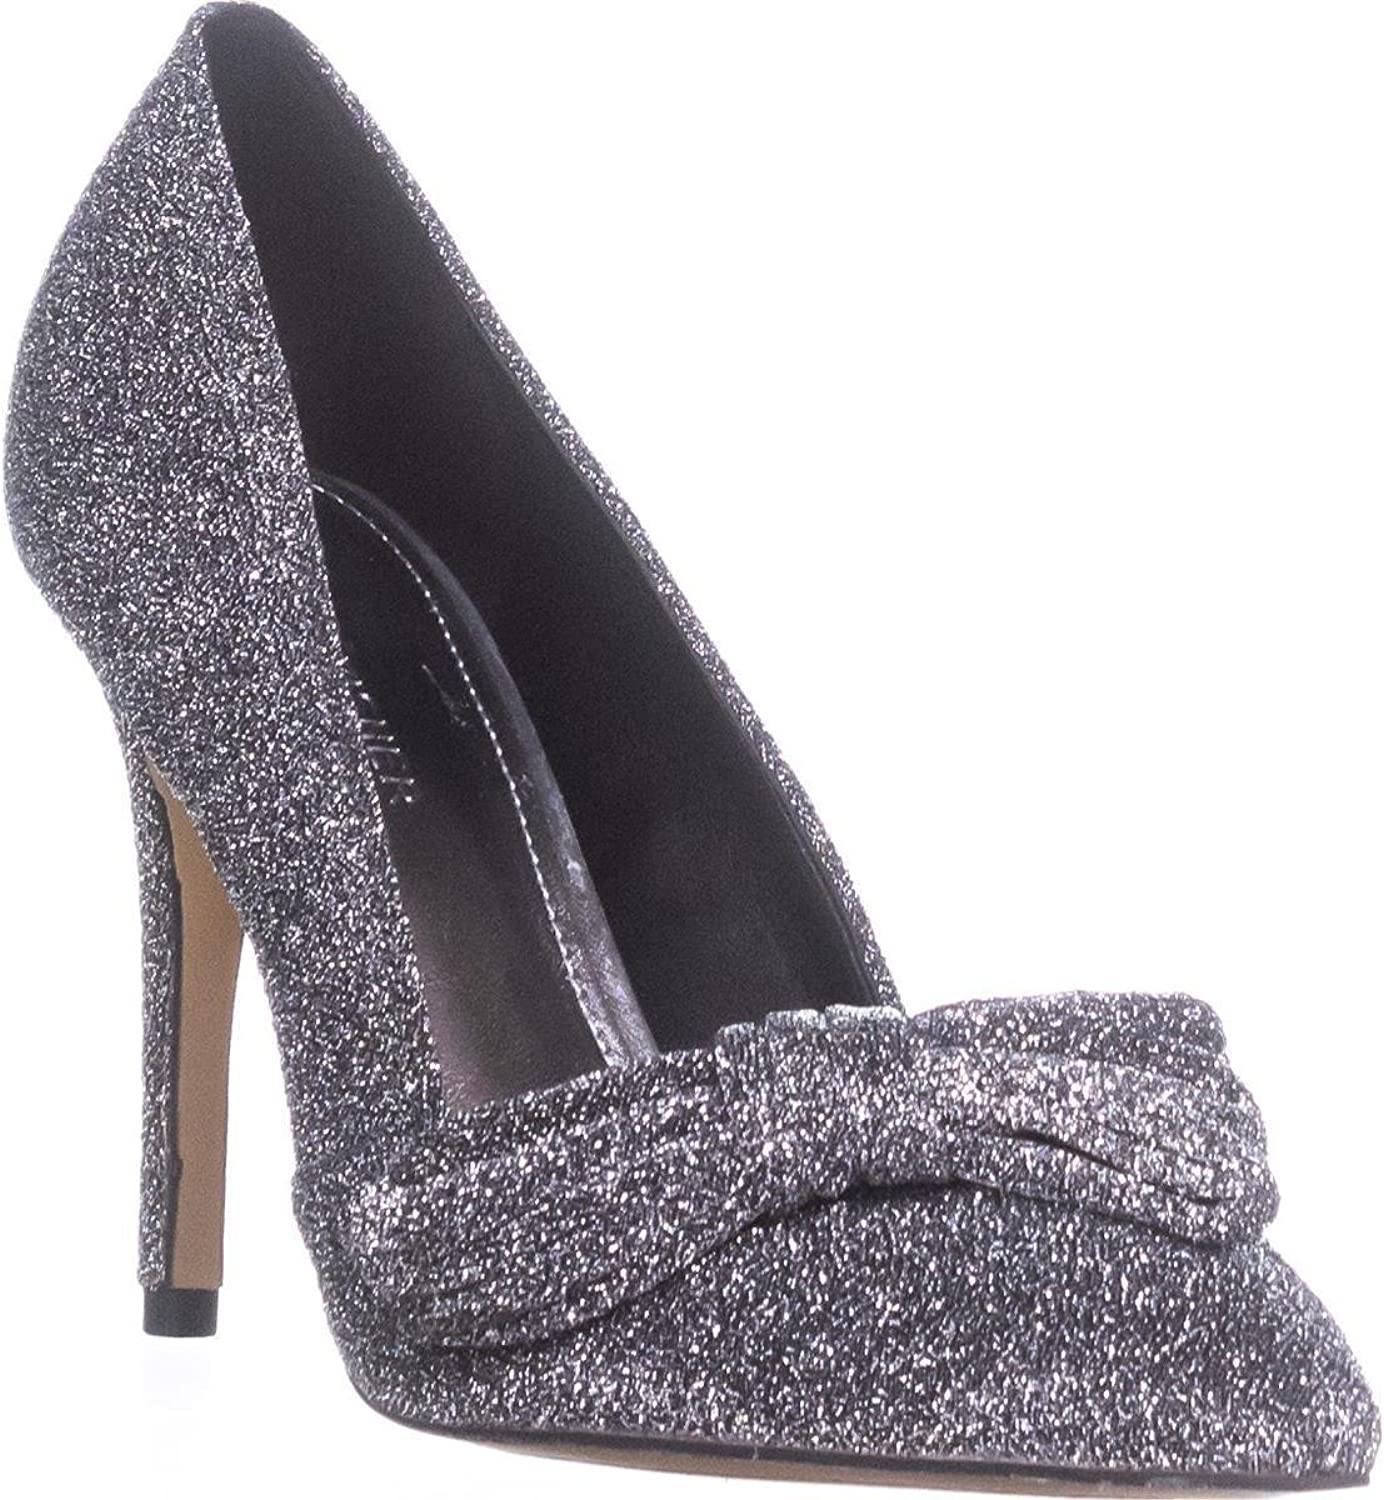 Marc Fisher Nighta Stiletto Pumps, Pewter